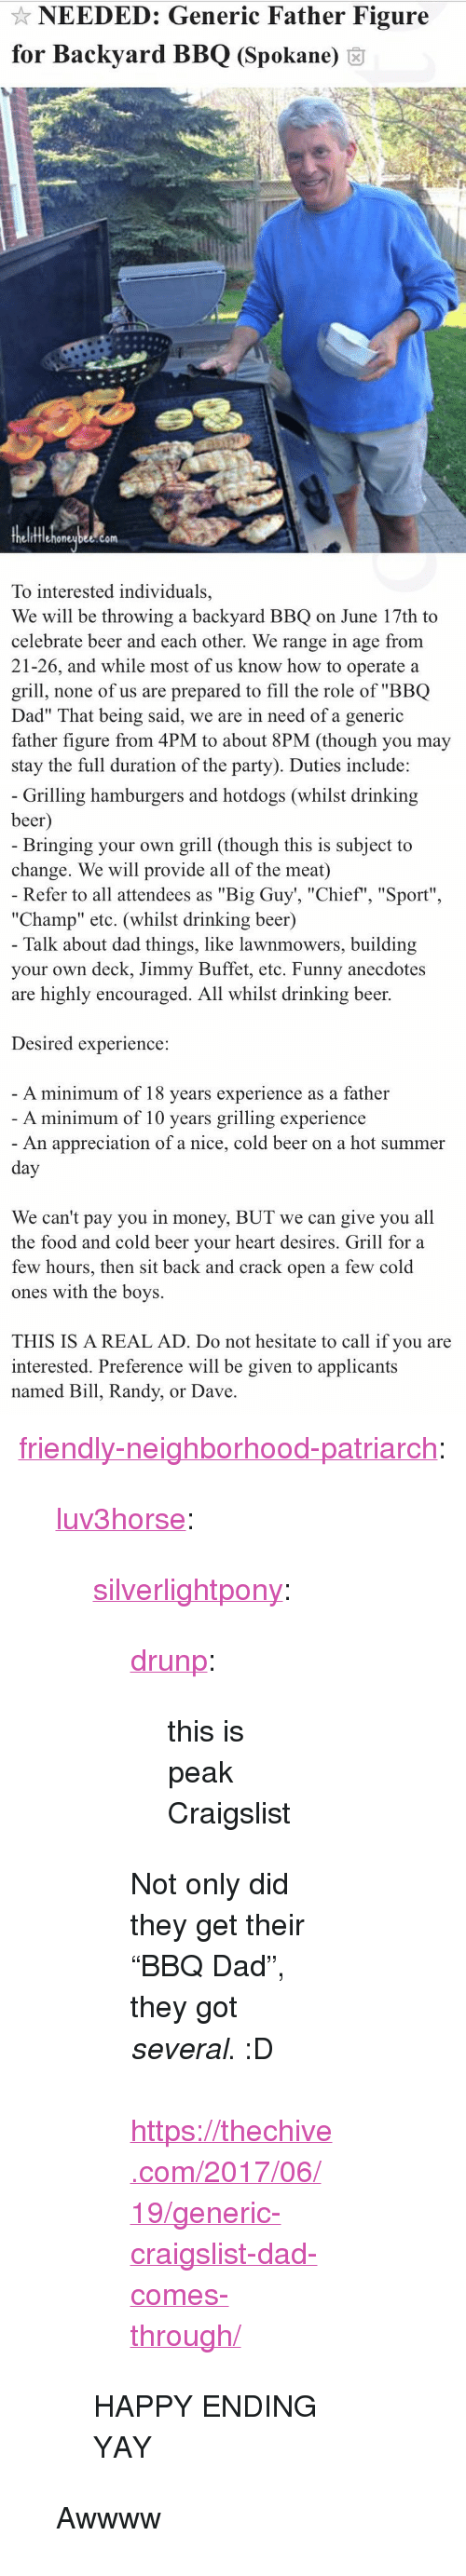 """duration: NEEDED: Generic Father Figure  for Backyard BBQ (Spokane) 6  fflehoneubee.com  To interested individuals,  We will be throwing a backyard BBQ on June 17th to  celebrate beer and each other. We range in age from  21-26, and while most of us know how to operate a  grill, none of us are prepared to fill the role of """"BBQ  Dad"""" That being said, we are in need of a generic  father figure from 4PM to about 8PM (though you may  stay the full duration of the party). Duties include:   Grilling hamburgers and hotdogs (whilst drinking  beer  Bringing your own grill (though this is subject to  change. We will provide all of the meat)  Refer to all attendees as """"Big Guy', """"Chief"""", """"Sport""""  """"Champ"""" etc. (whilst drinking beer)  Talk about dad things, like lawnmowers, building  your own deck, Jimmy Buffet, etc. Funny anecdotes  are highly encouraged. All whilst drinking beer.  Desired experience:  A minimum of 18 vears experience as a father  A minimum of 10 years grilling experience  An appreciation of a nice, cold beer on a hot summer  We can't pay you in money, BUT we can give you all  the food and cold beer vour heart desires. Grill for a  few hours, then sit back and crack open a few cold  ones with the boys.  THIS IS A REAL AD. Do not hesitate to call if you are  interested. Preference will be given to applicants  named Bill, Randy, or Dave <p><a href=""""http://friendly-neighborhood-patriarch.tumblr.com/post/170766193952/luv3horse-silverlightpony-drunp-this-is"""" class=""""tumblr_blog"""">friendly-neighborhood-patriarch</a>:</p><blockquote> <p><a href=""""http://luv3horse.tumblr.com/post/164653478181/silverlightpony-drunp-this-is-peak-craigslist"""" class=""""tumblr_blog"""">luv3horse</a>:</p> <blockquote> <p><a href=""""https://silverlightpony.tumblr.com/post/162259709552/drunp-this-is-peak-craigslist-not-only-did-they"""" class=""""tumblr_blog"""">silverlightpony</a>:</p>  <blockquote> <p><a href=""""https://drunp.tumblr.com/post/161376664752/this-is-peak-craigslist"""" class=""""tumblr_blog"""">drunp</a>:</p>"""